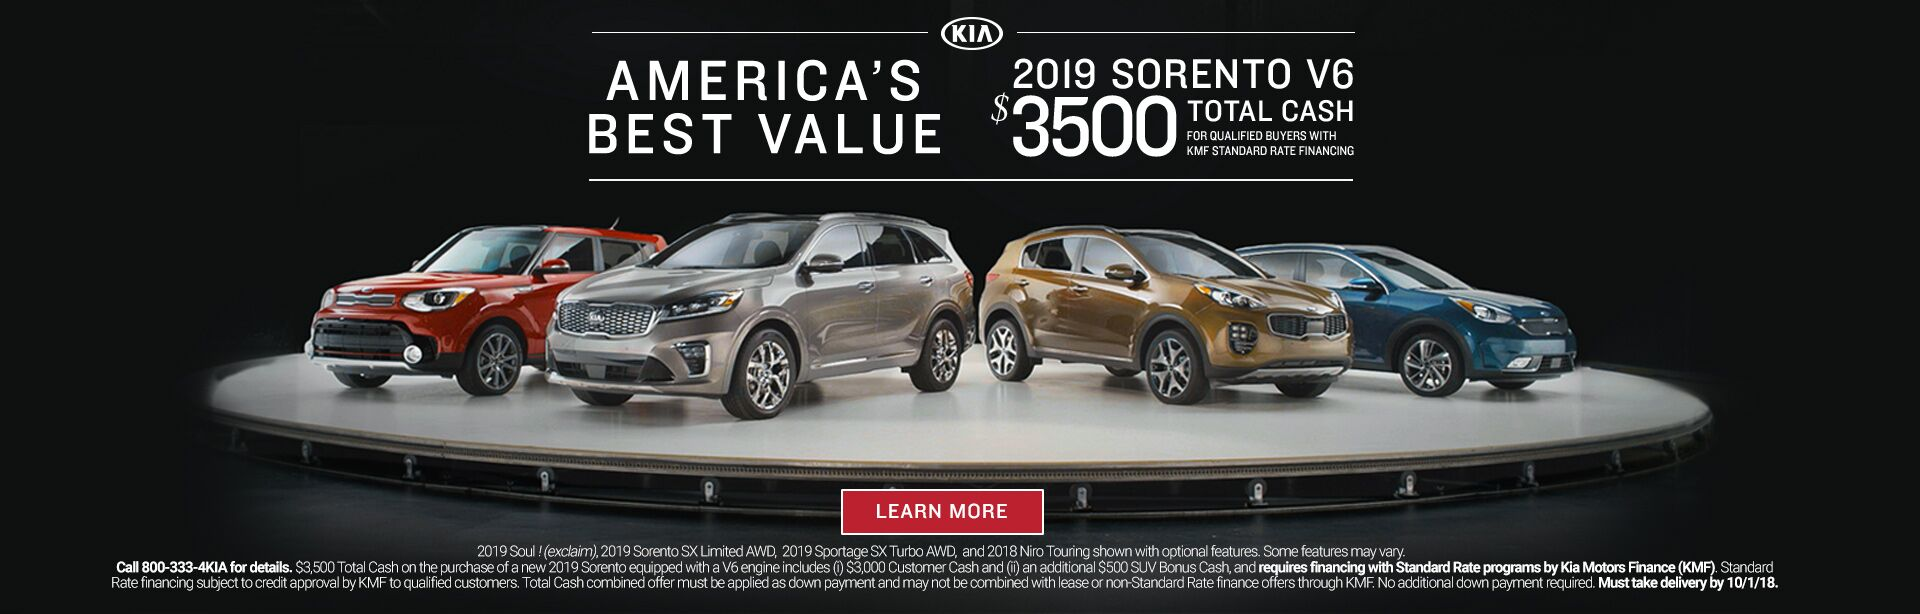 America's Best Value 2019 Sorento Carolina Kia of High Point